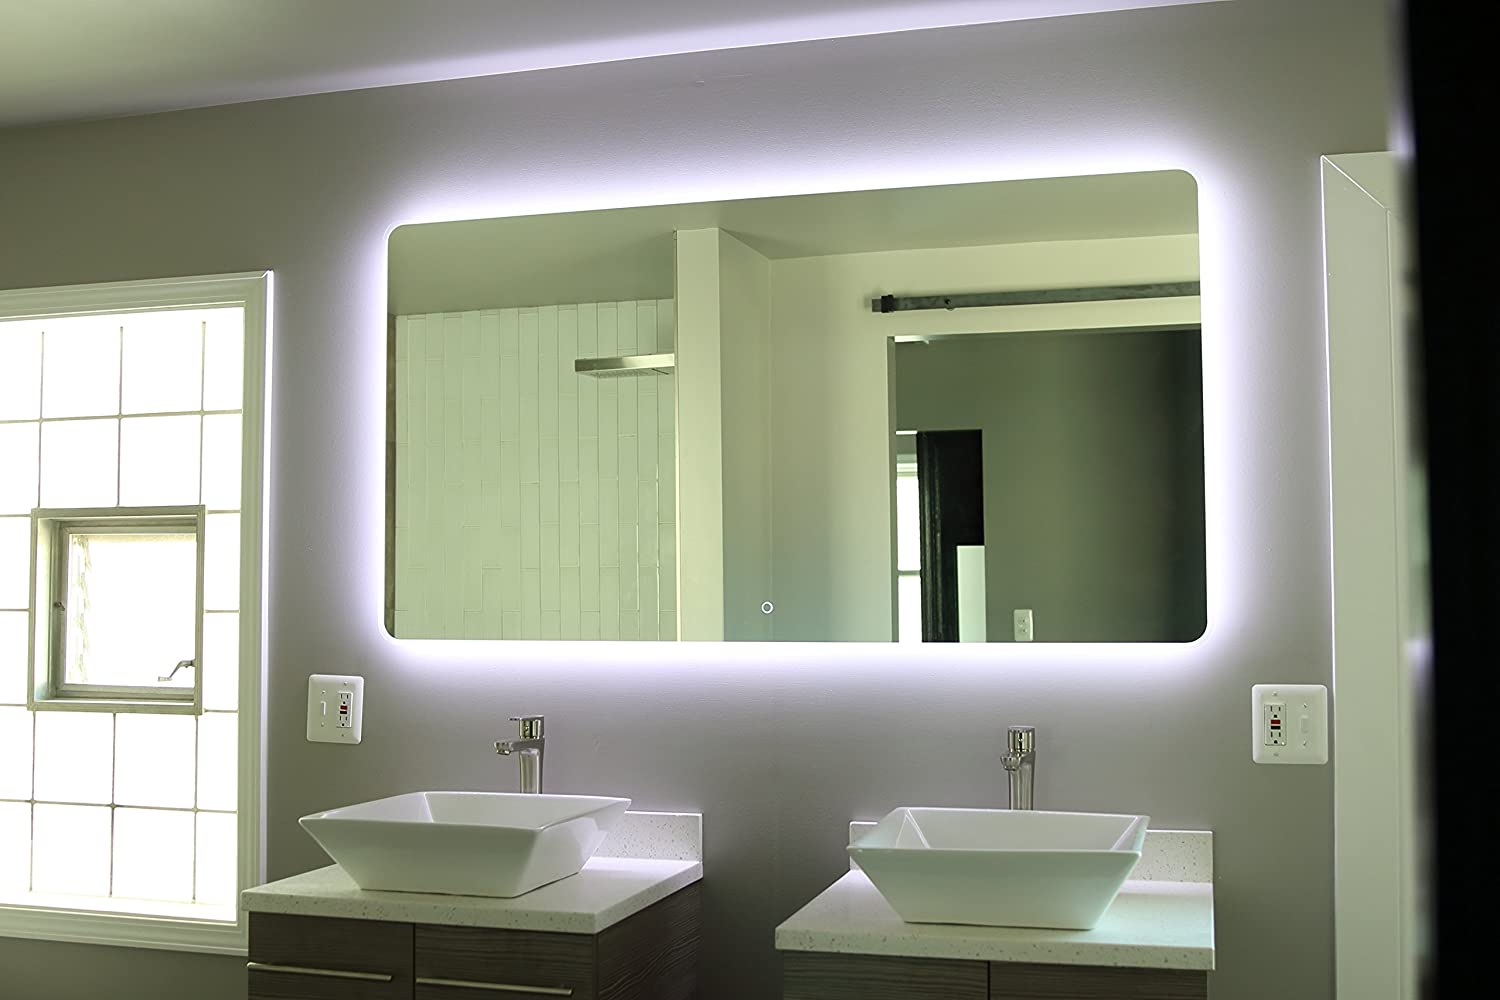 Amazon Windbay Backlit Led Light Bathroom Vanity Sink Mirror Illuminated 24 Home Kitchen